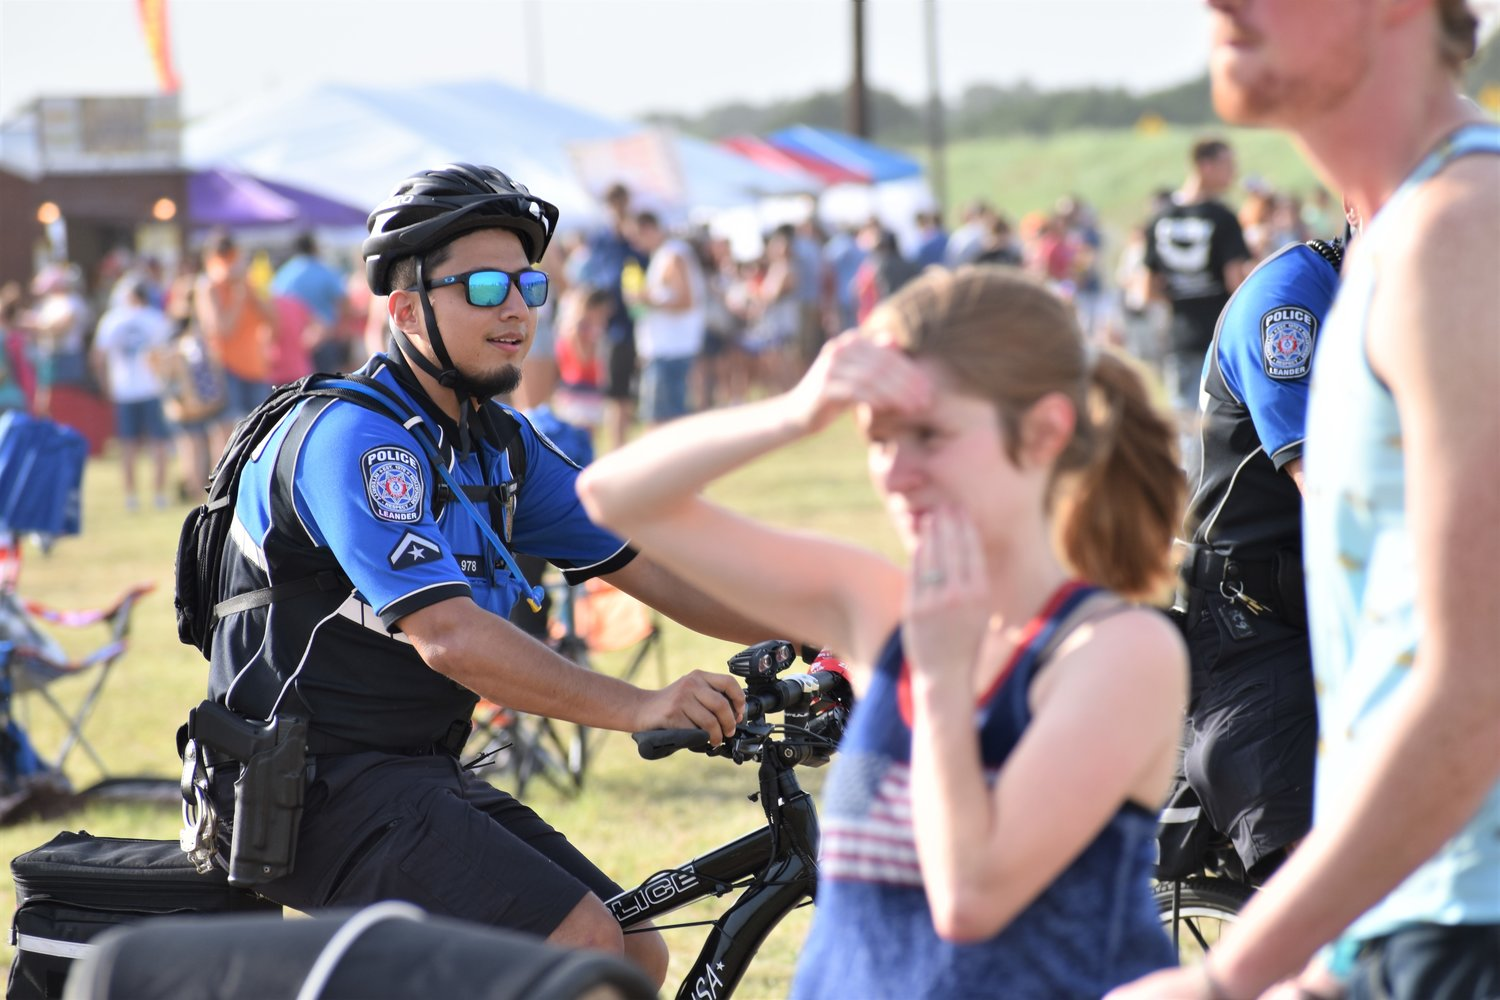 A police officer rides around the festival grounds on a bicycle during Liberty Fest in Leander on Thursday.